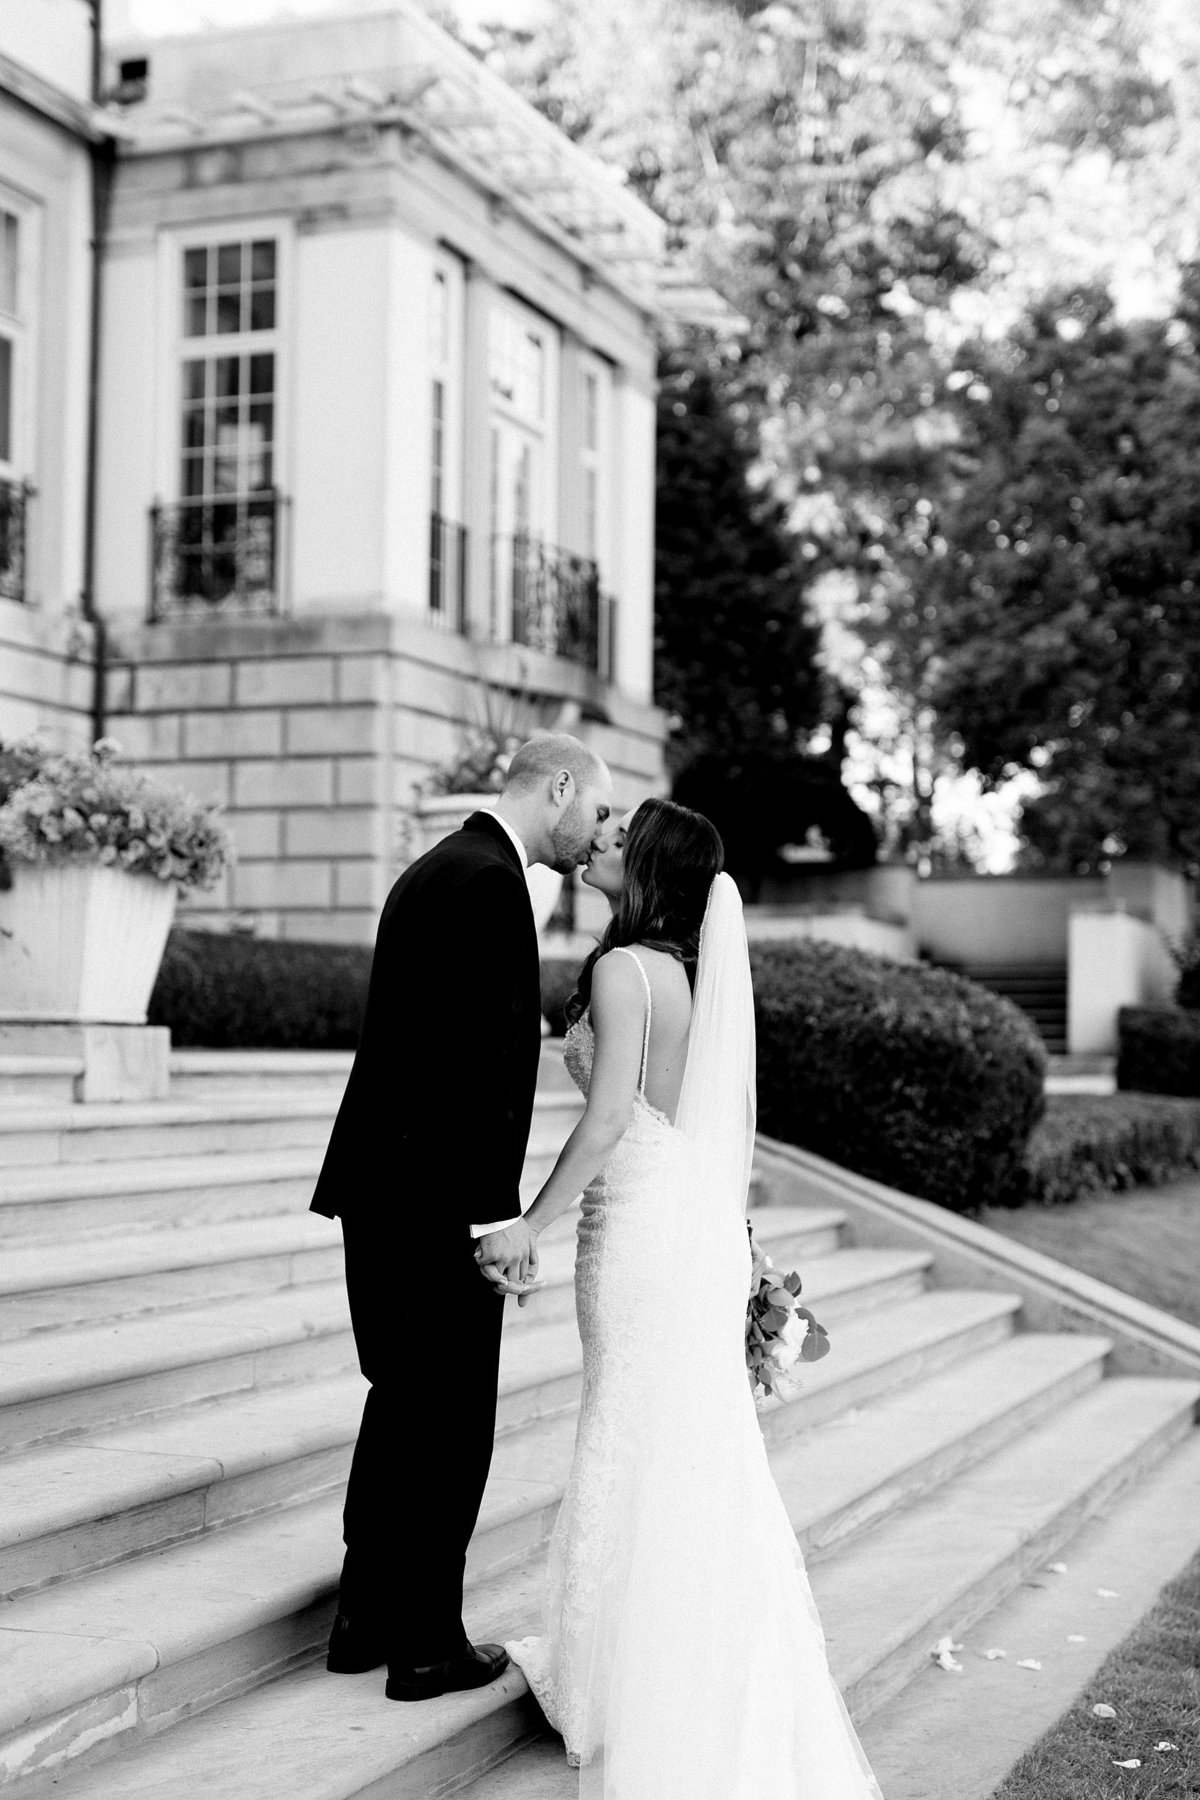 Shuster-Wedding-Grosse-Pointe-War-Memorial-Breanne-Rochelle-Photography121